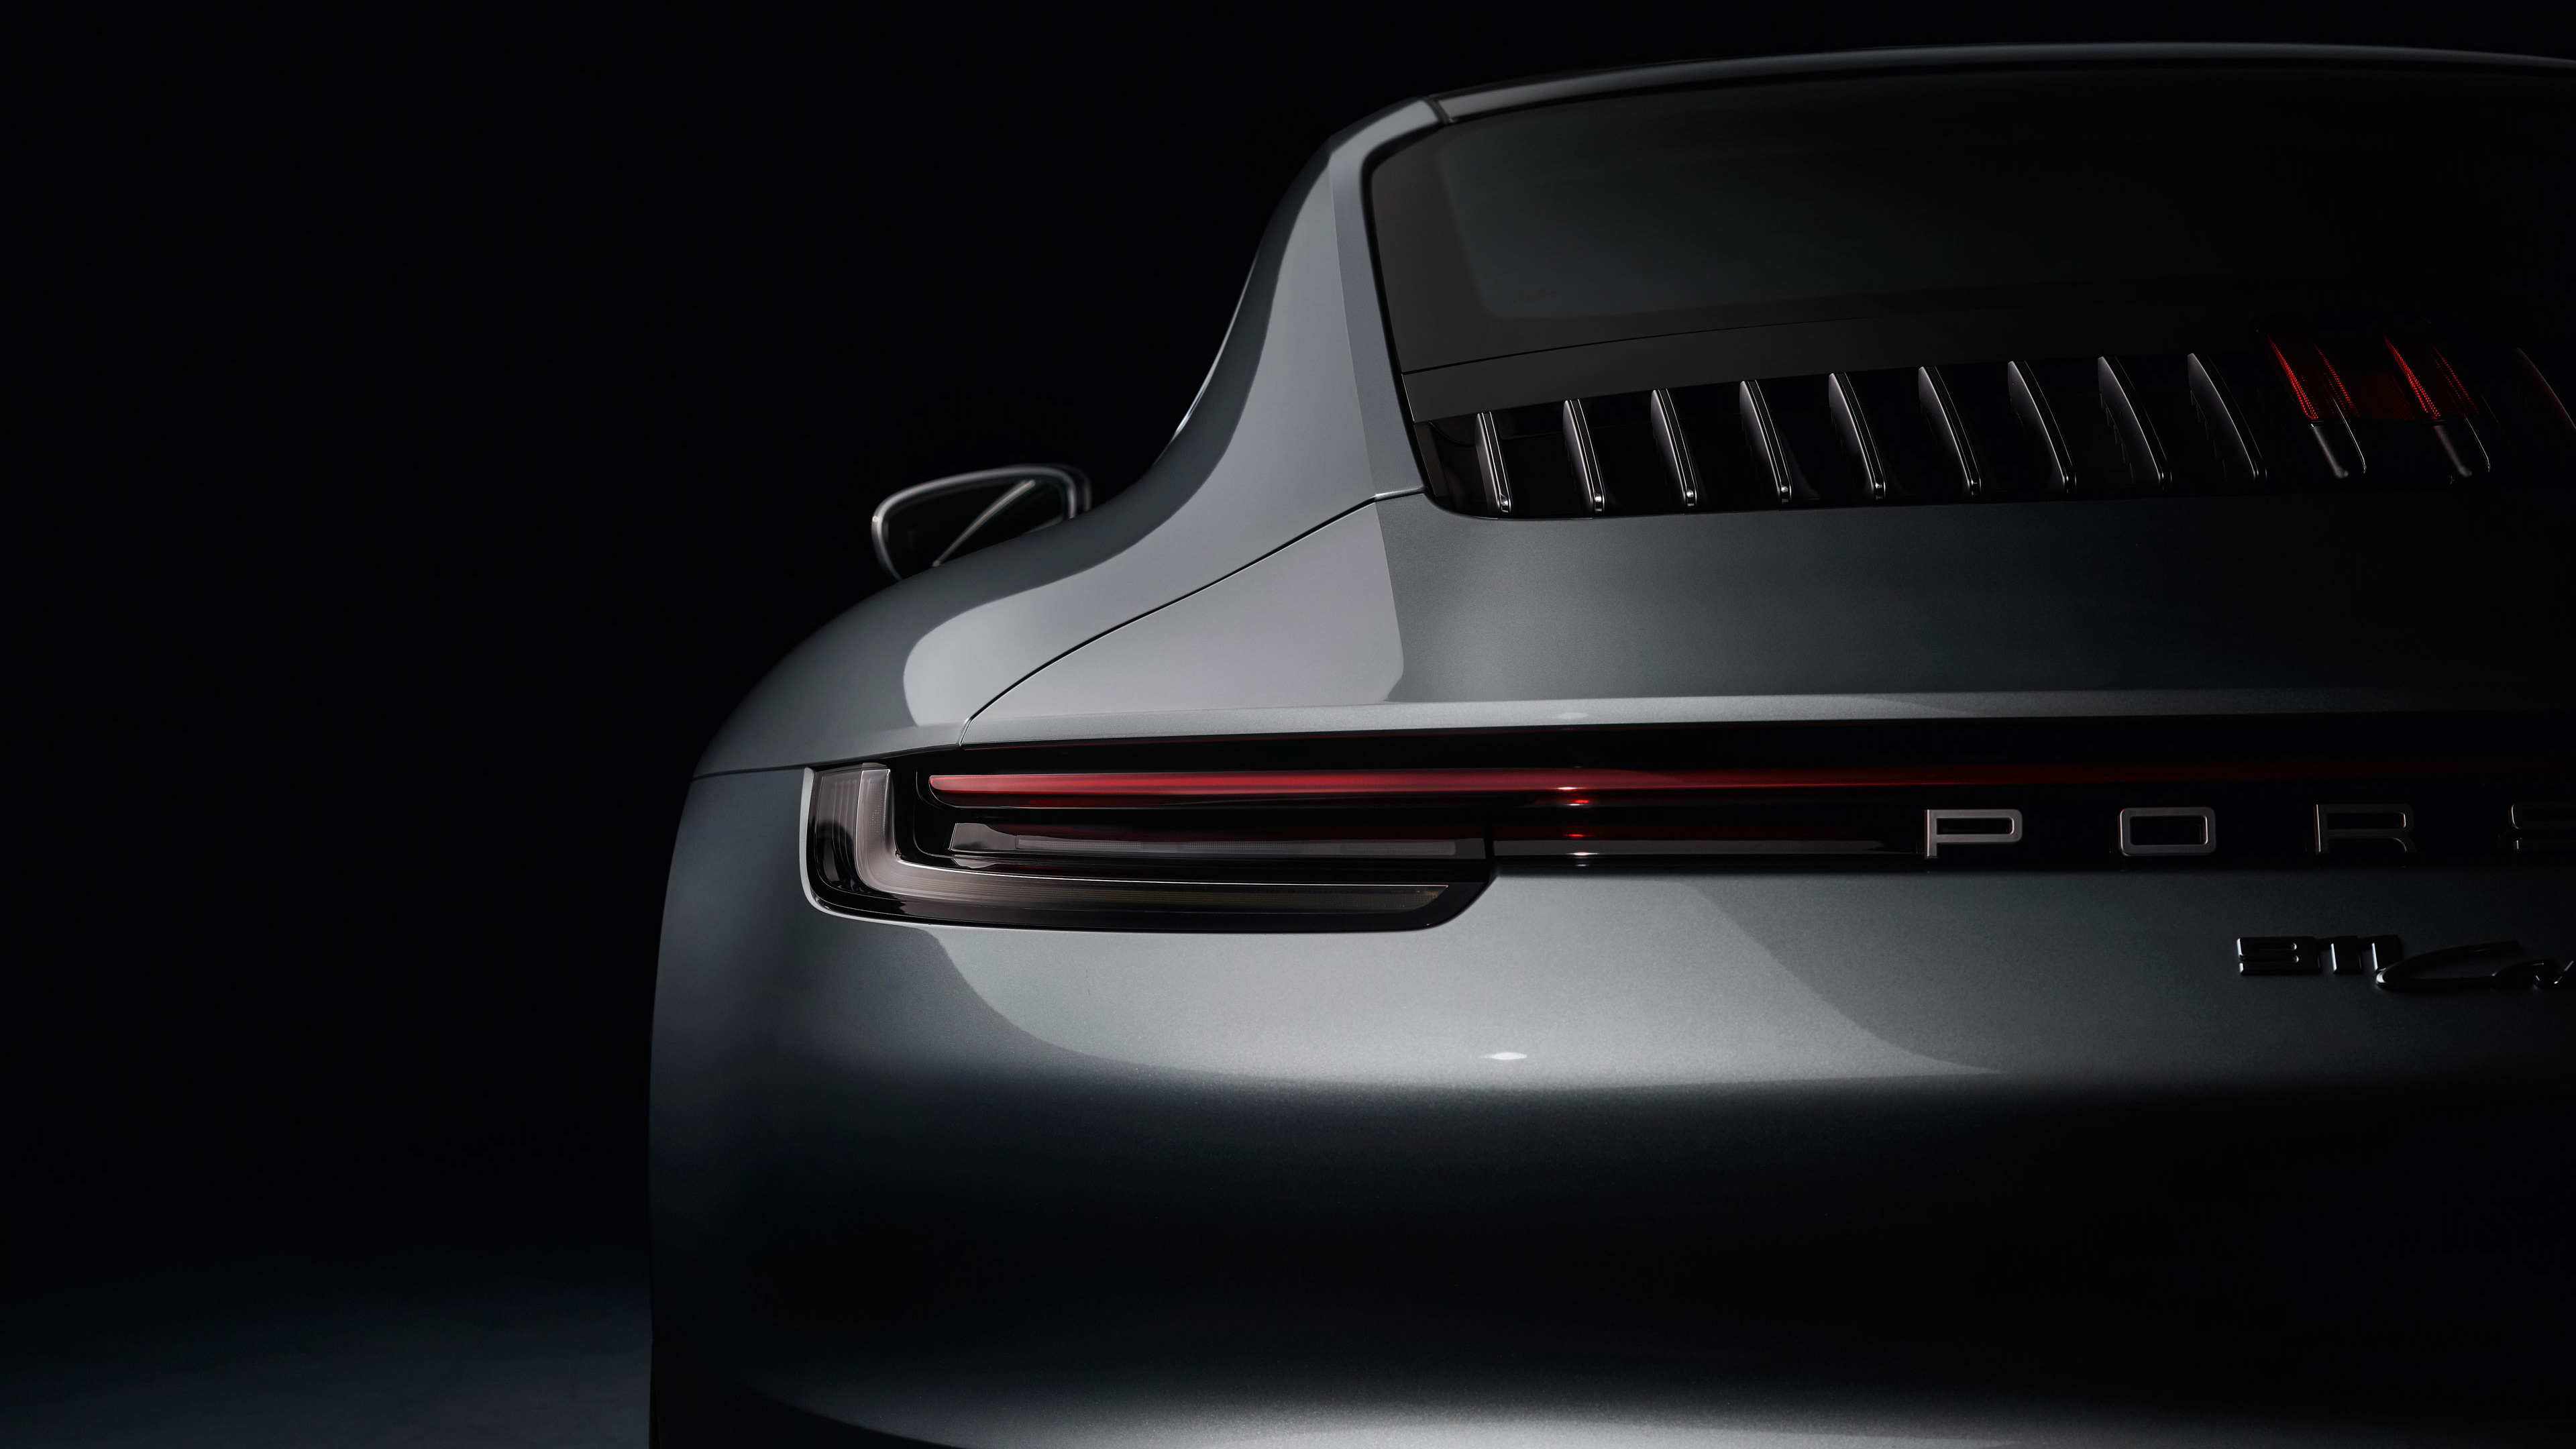 Porsche 911 Carrera hd model